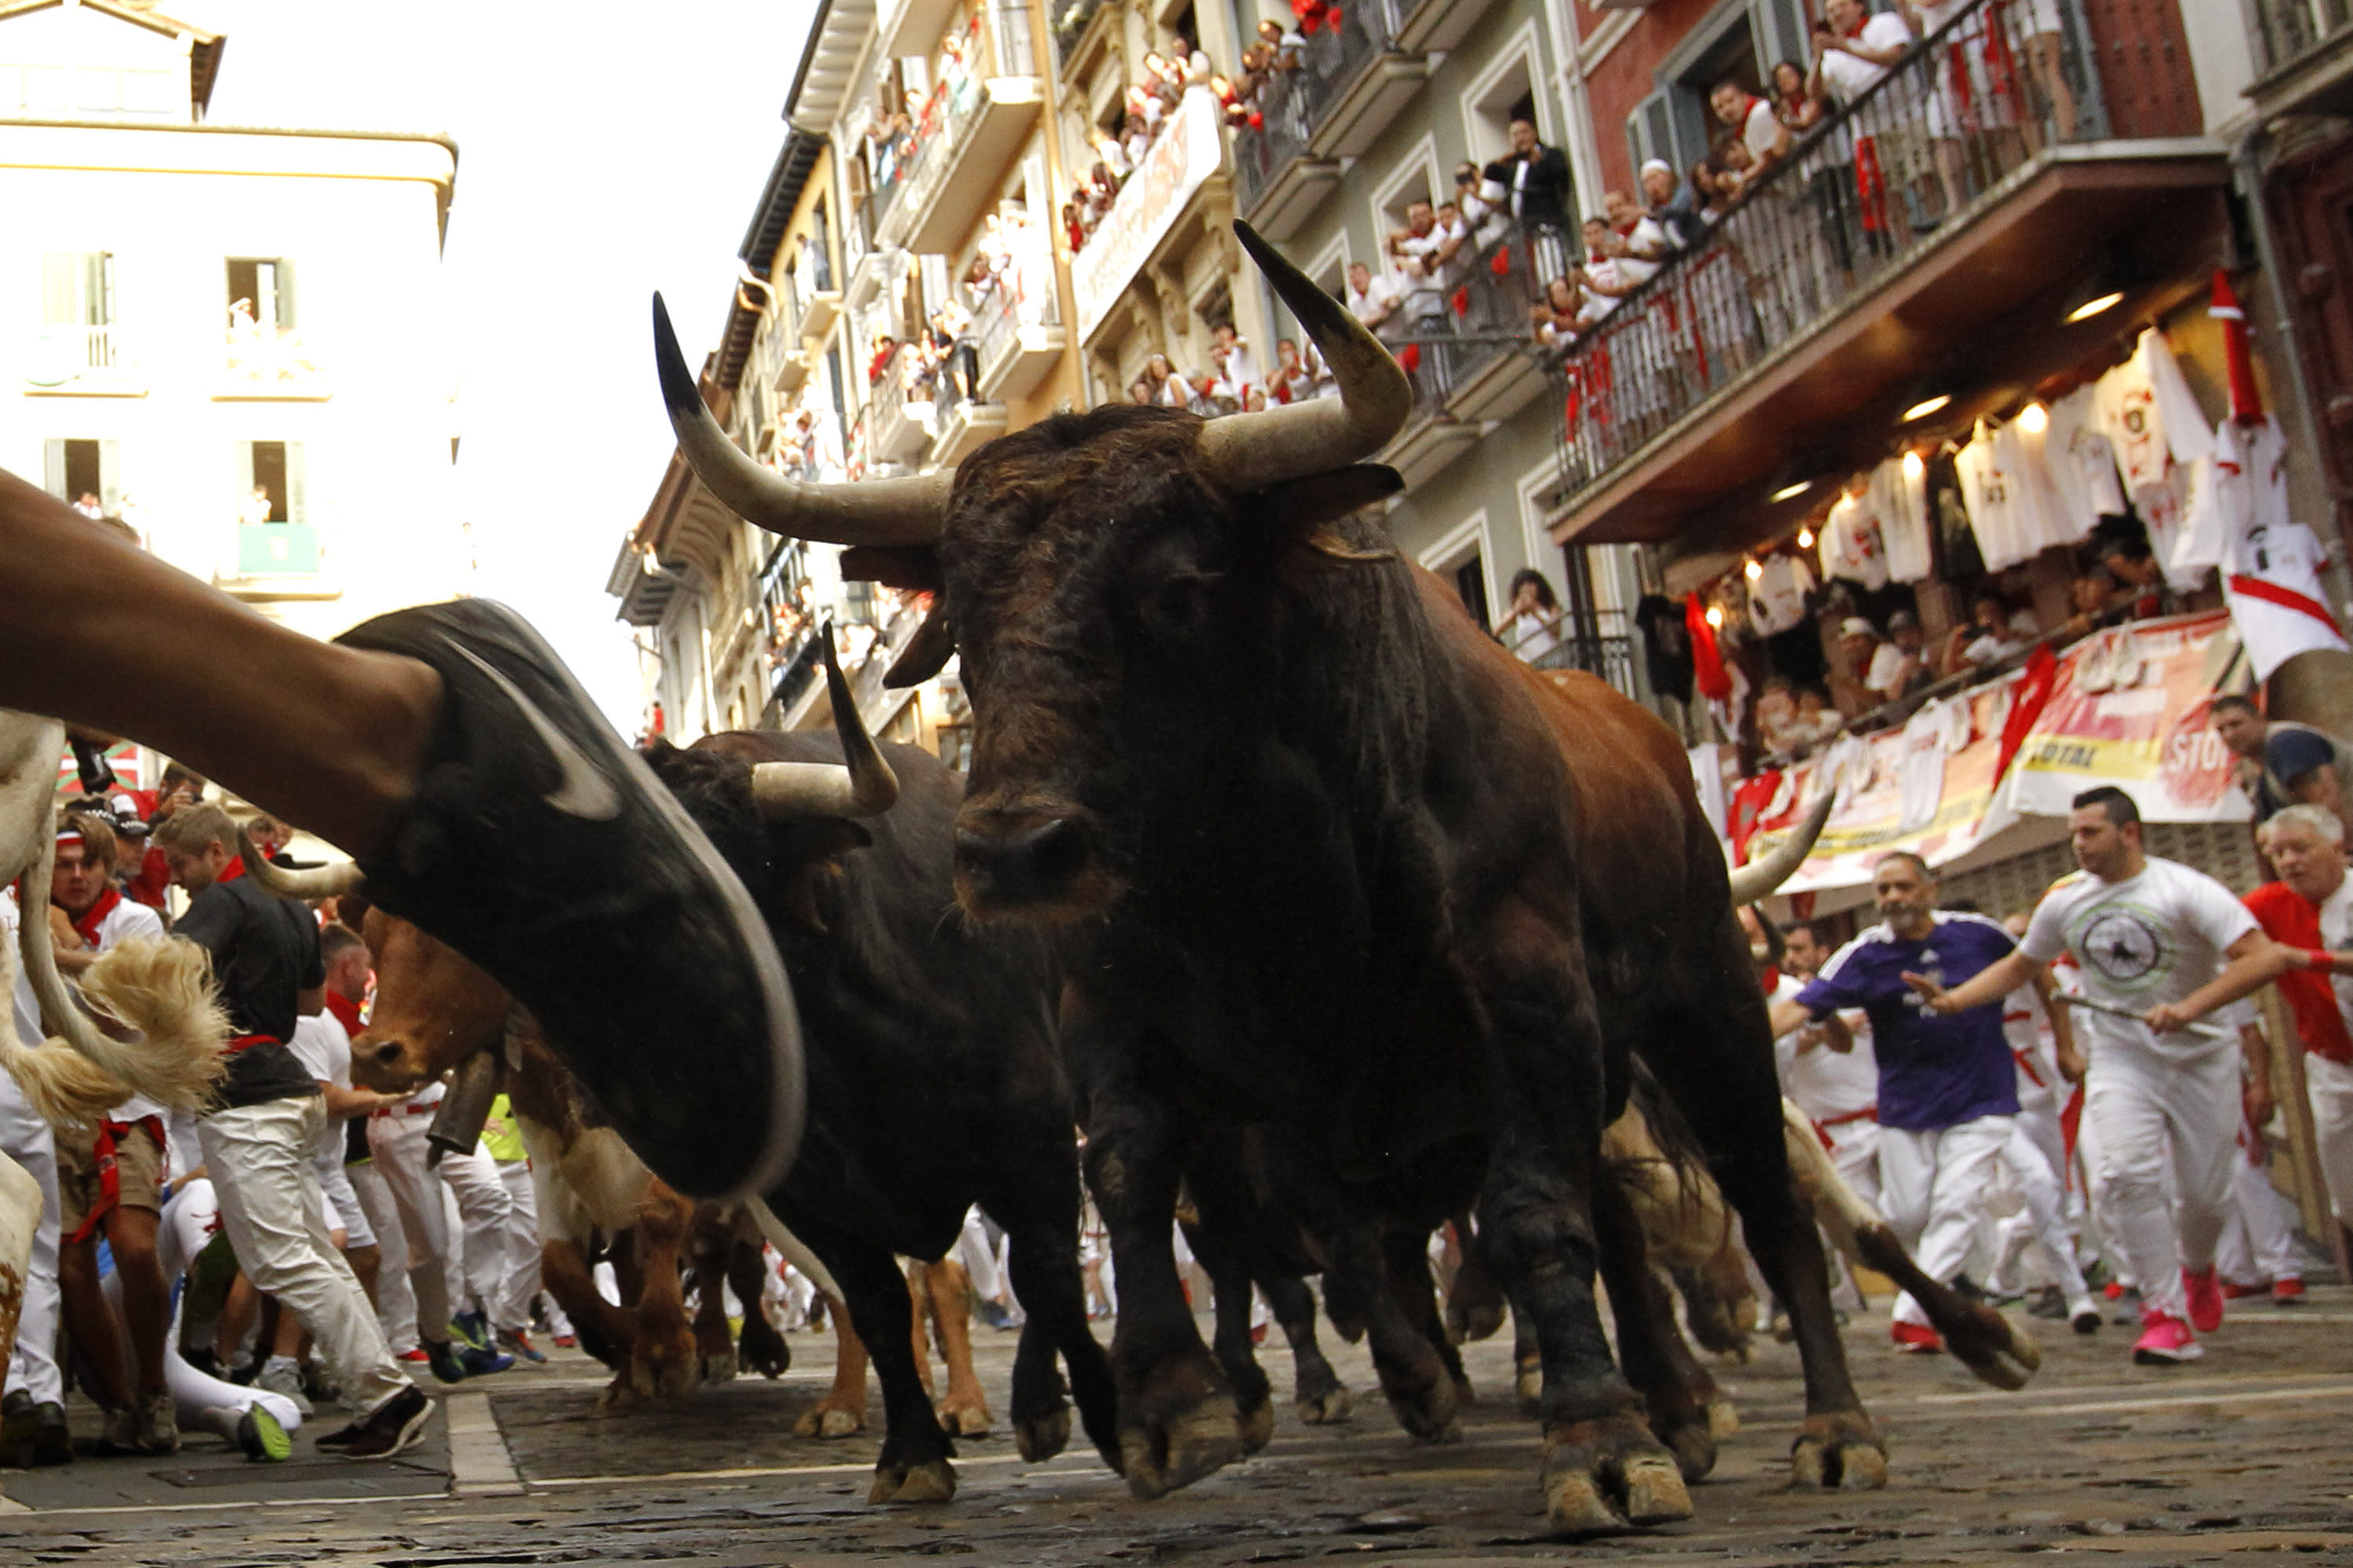 Run In With Pamplona Bull Made American Fear For My Life